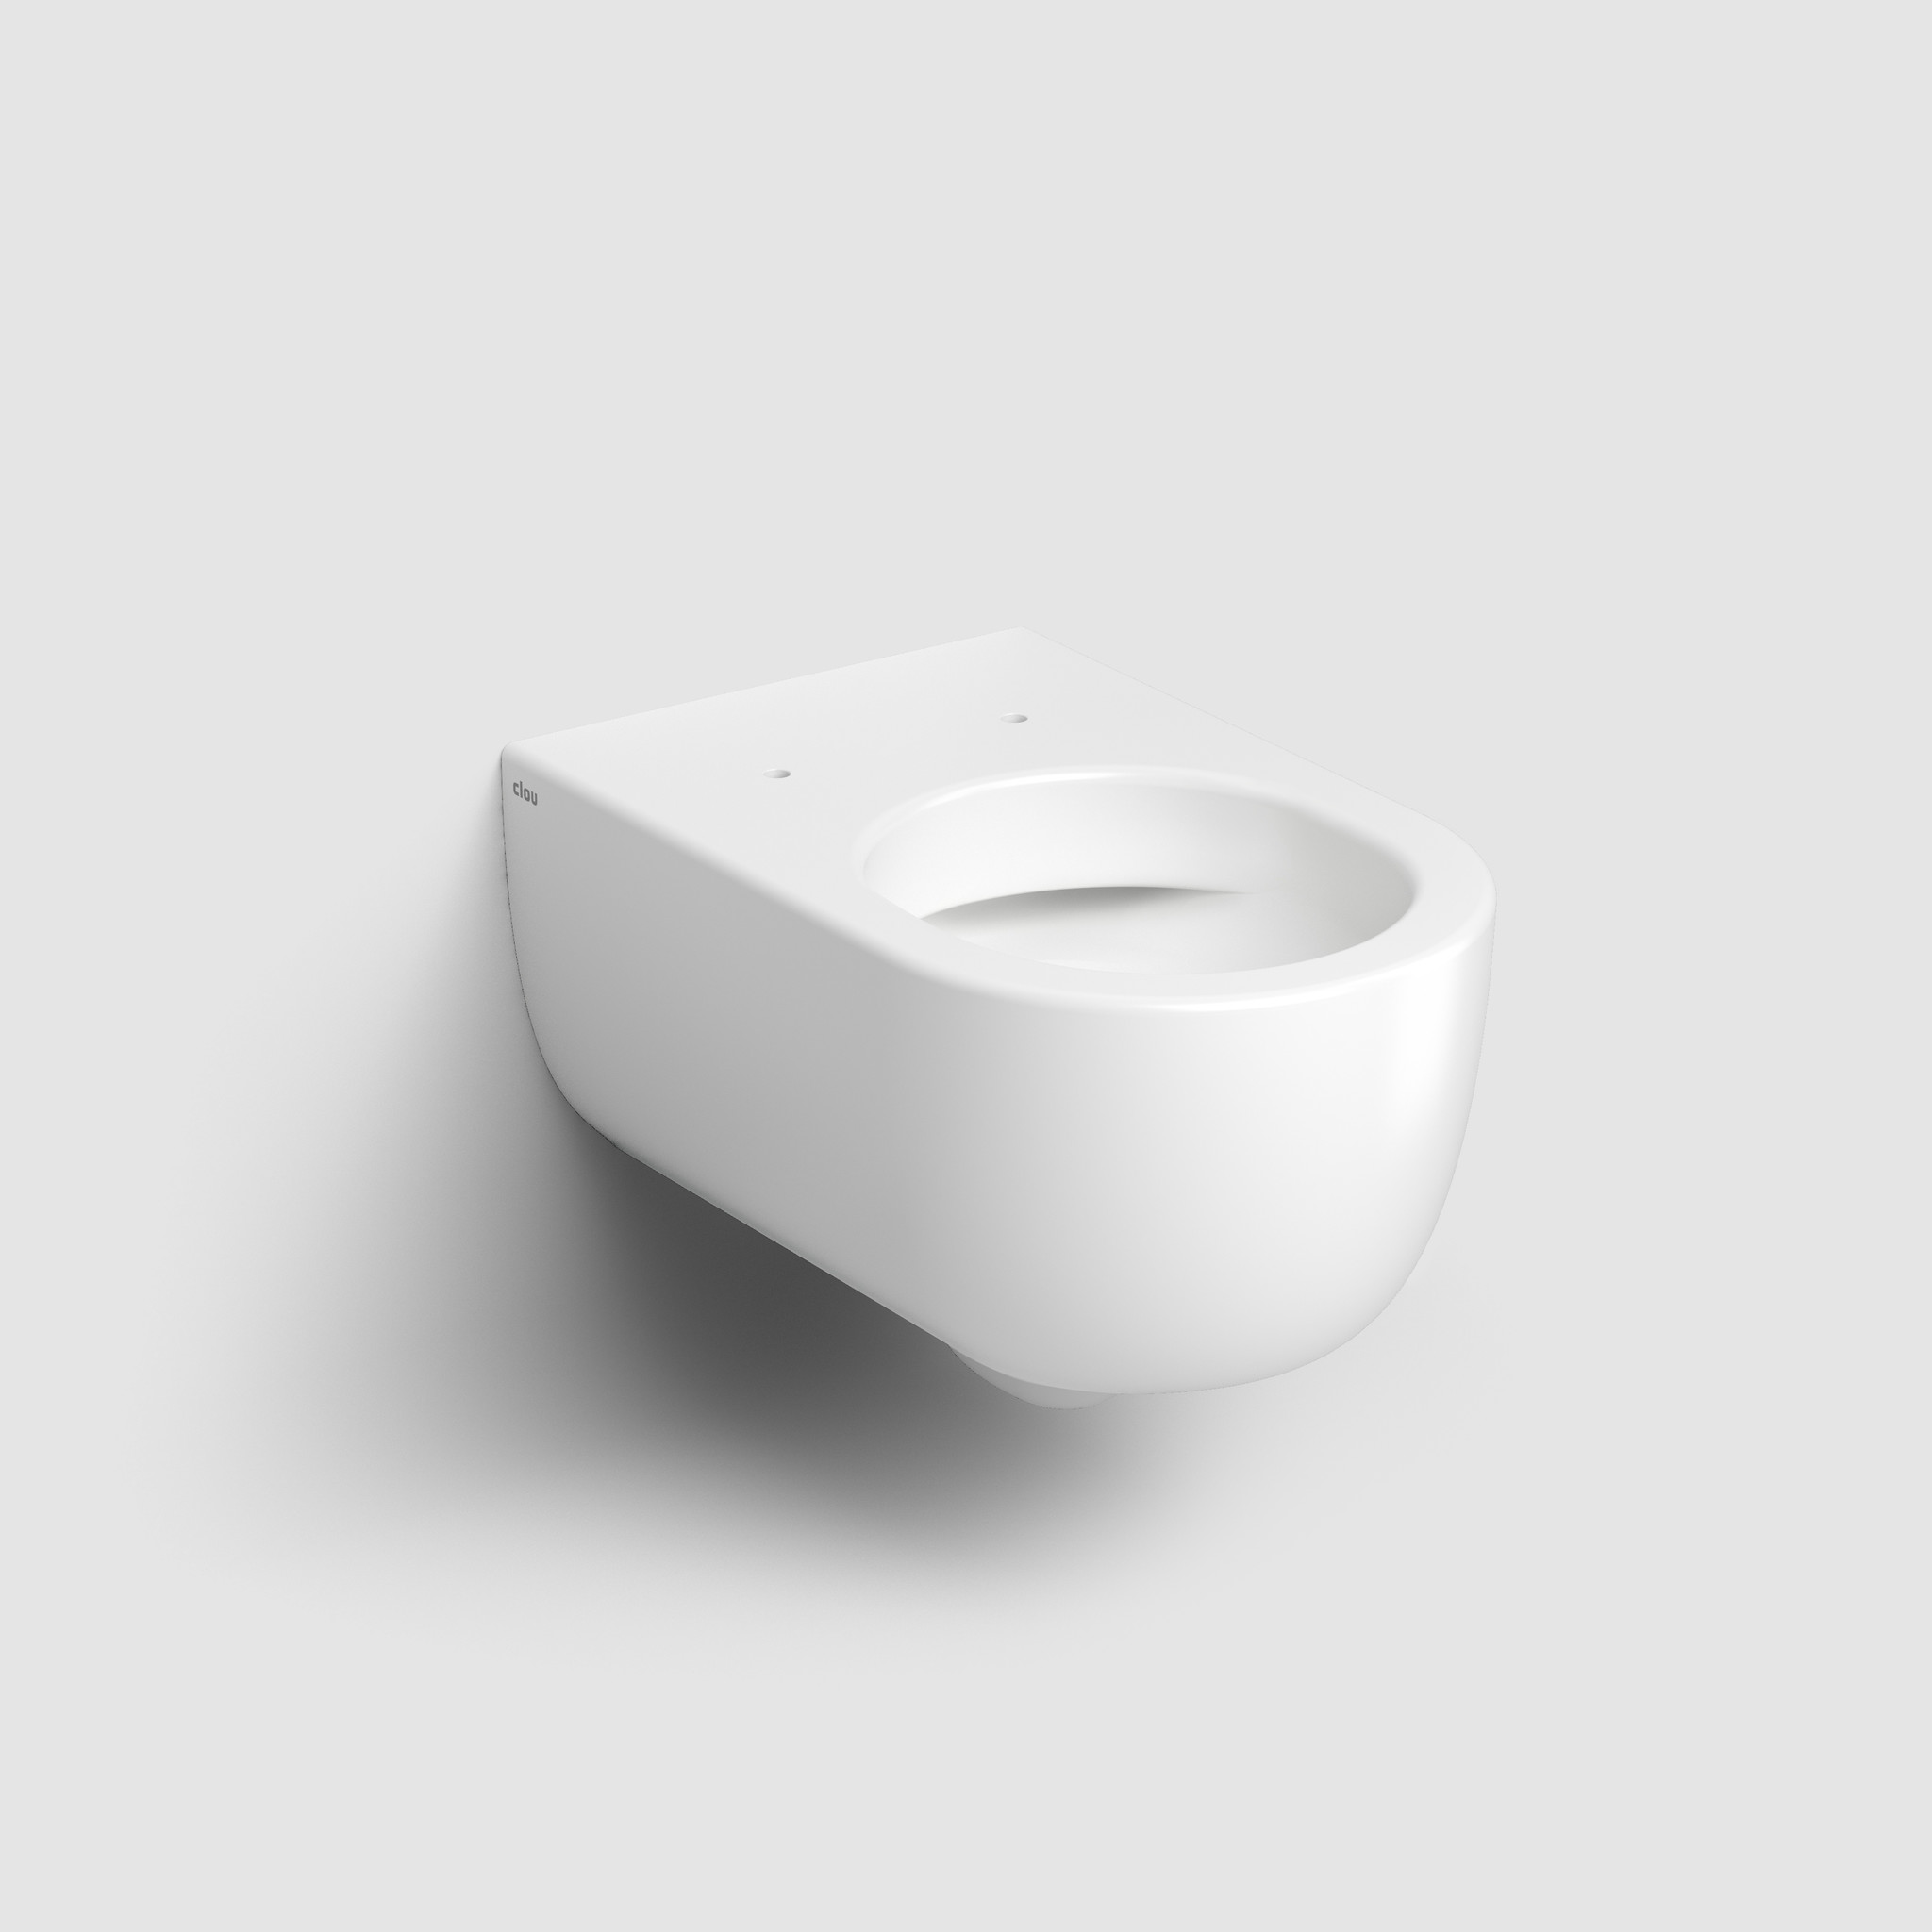 Hammock rimless toilet 56cm without seat and cover